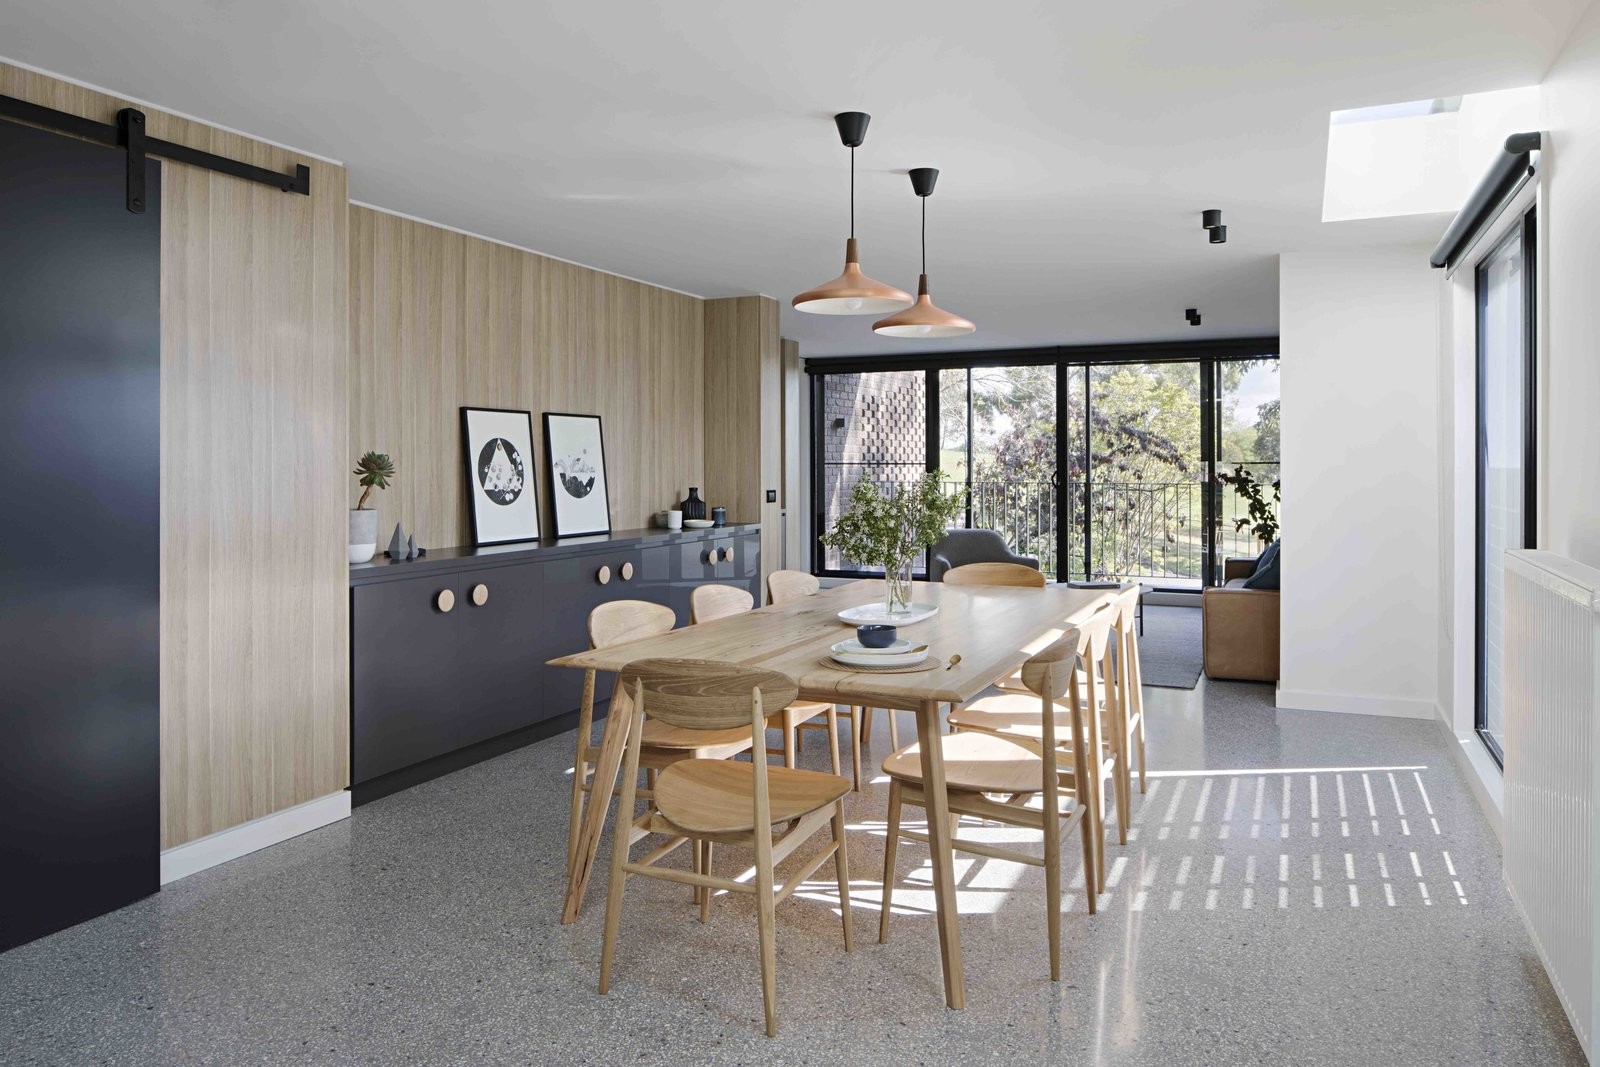 Dining Room, Table, Chair, Storage, Pendant Lighting, and Ceiling Lighting  Photo 16 of 17 in A Remodel Turns a Dark and Choppy House in Melbourne Into a Bright, Flexible Family Home